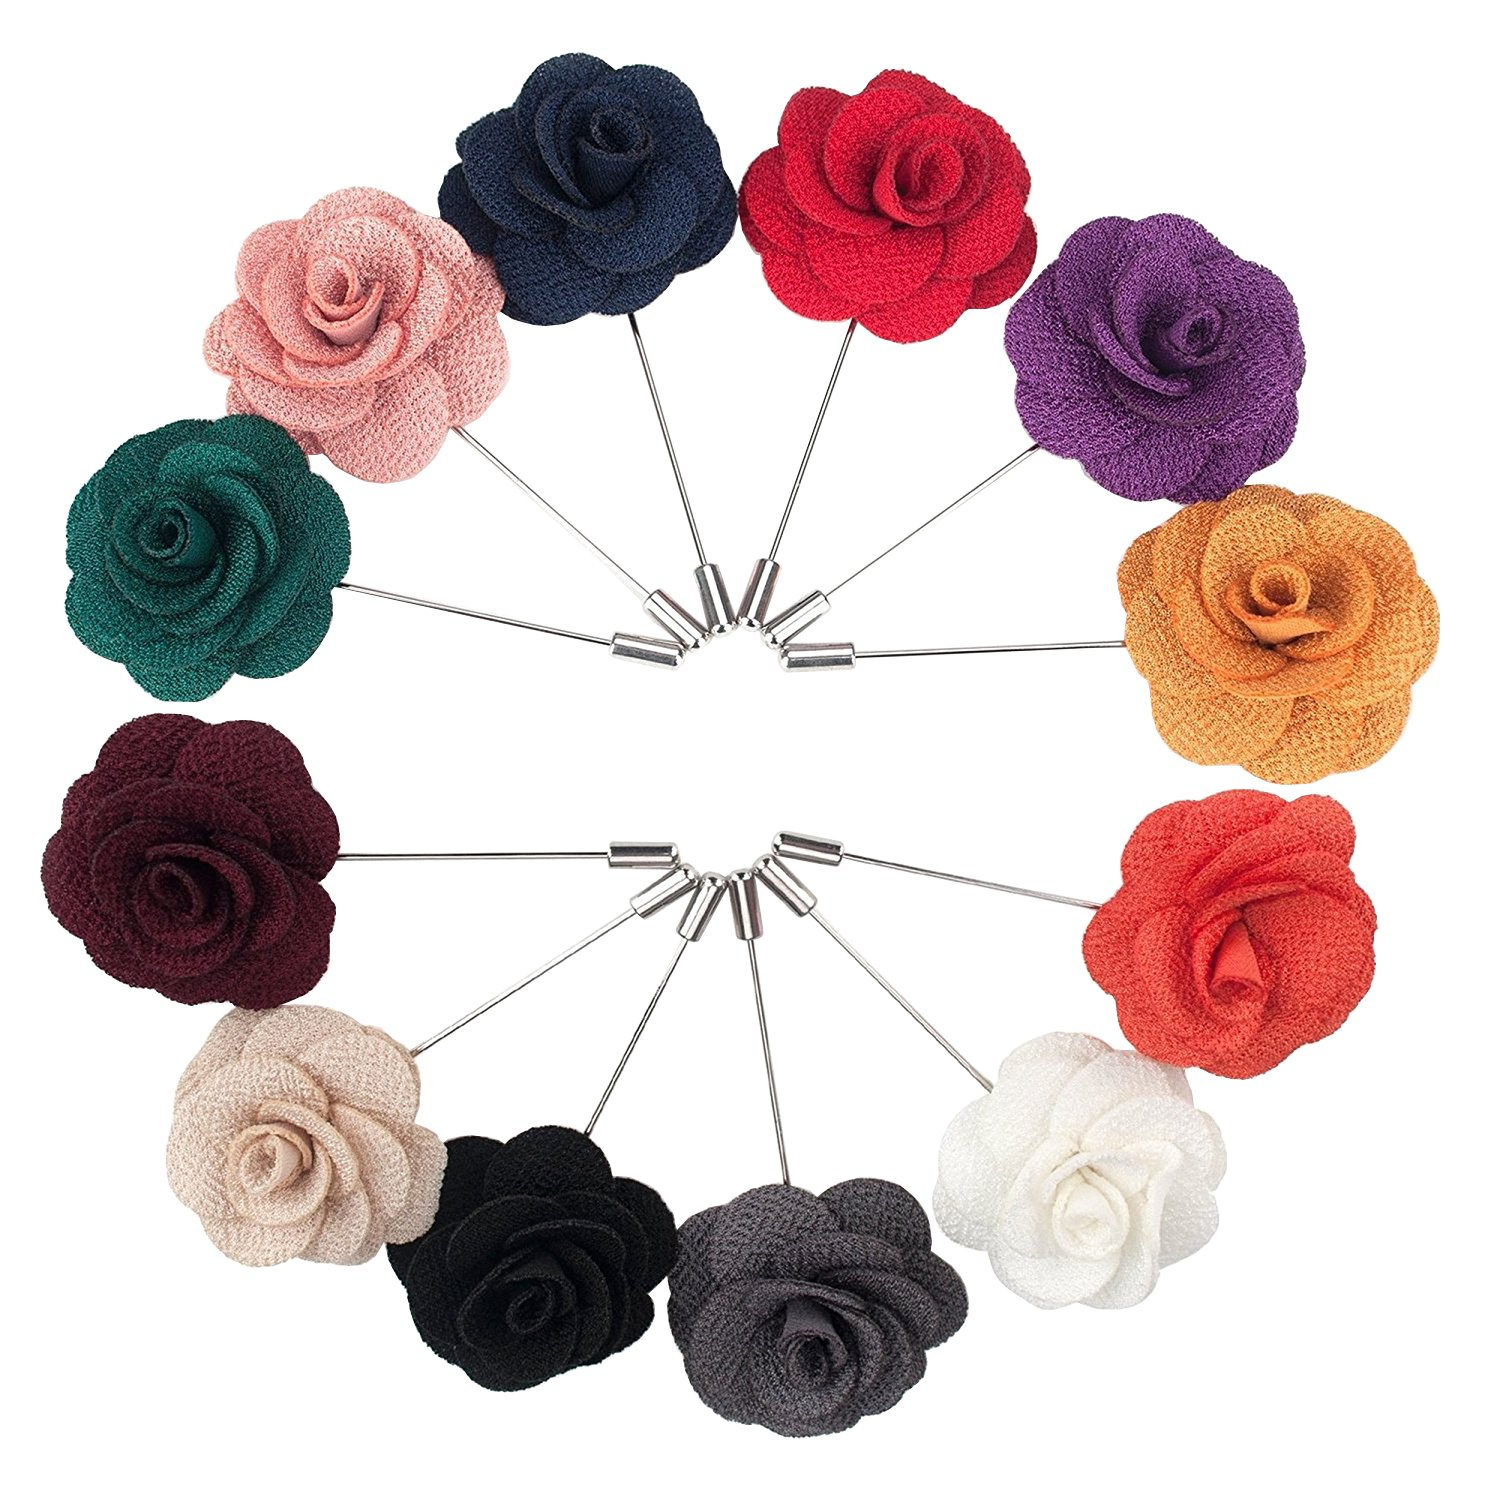 Geek-M Men's Lapel Pin Handmade Boutonniere Flower Brooch for Suit Wedding Party Pack of 12 PIN-2